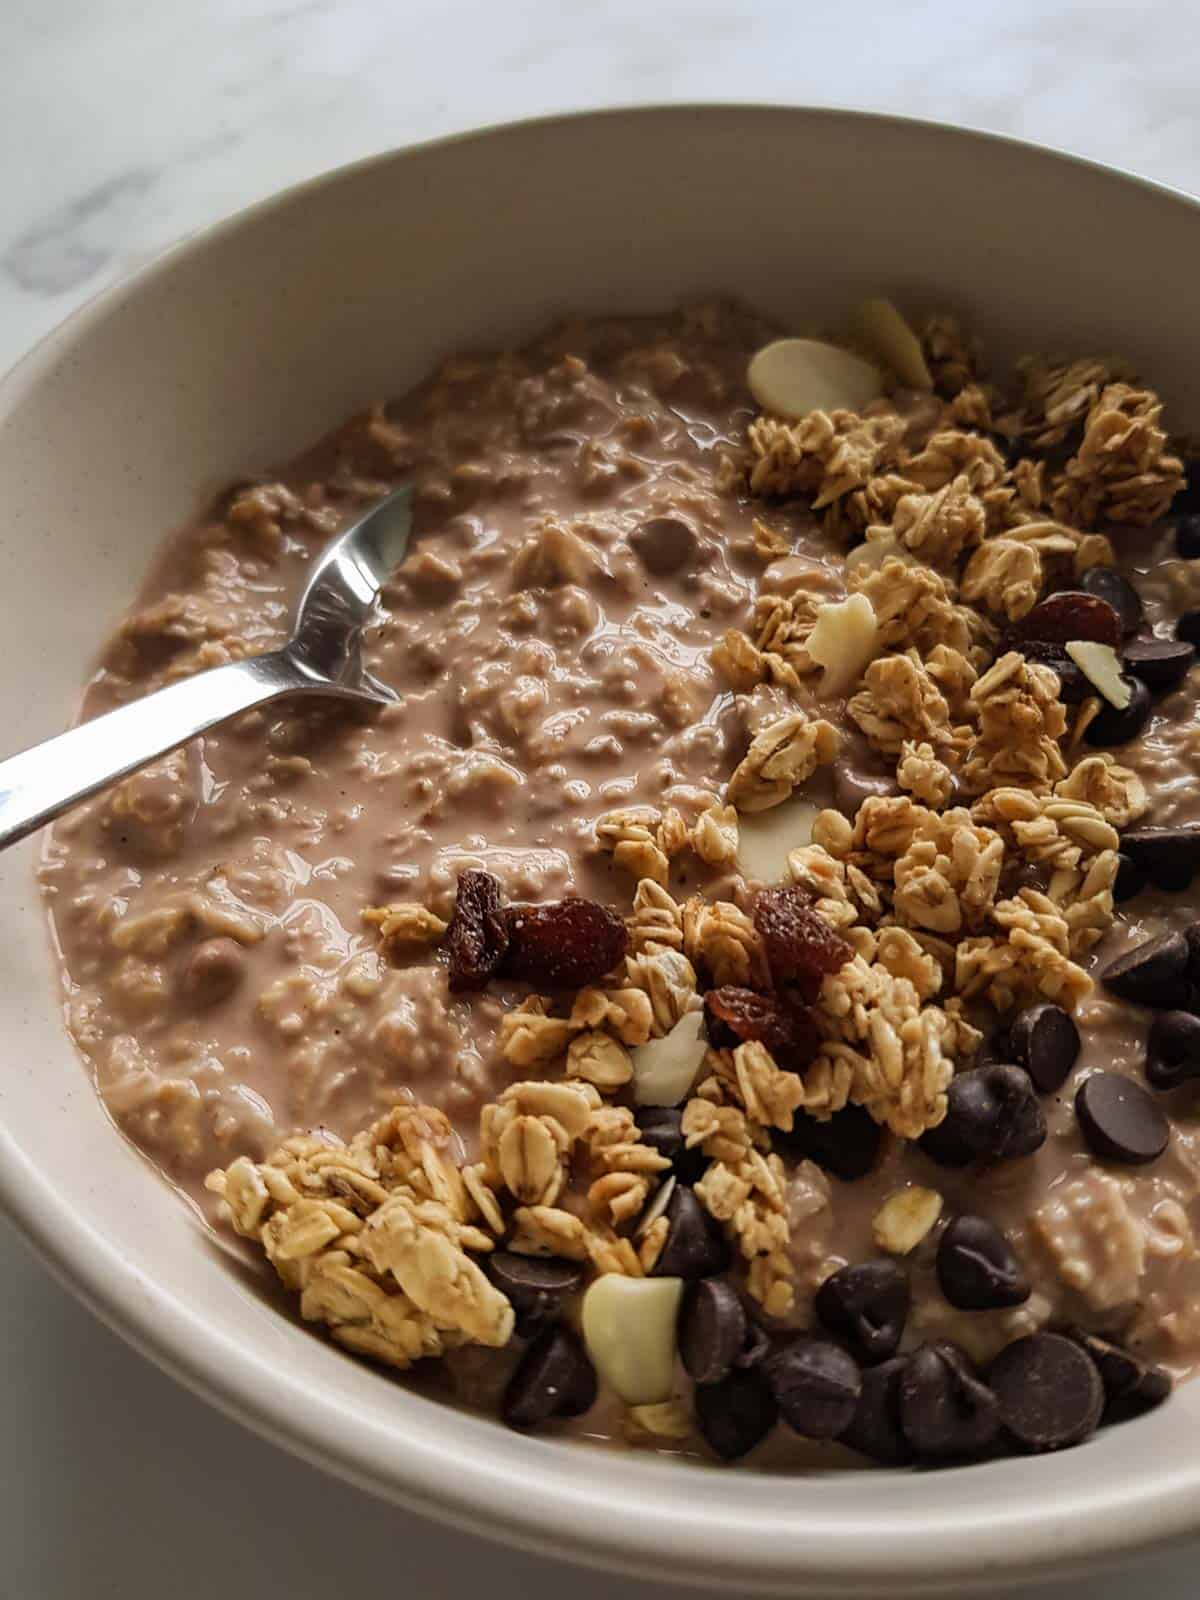 Close up of chocolate overnight oats in a bowl with granola and chocolate chips on top.